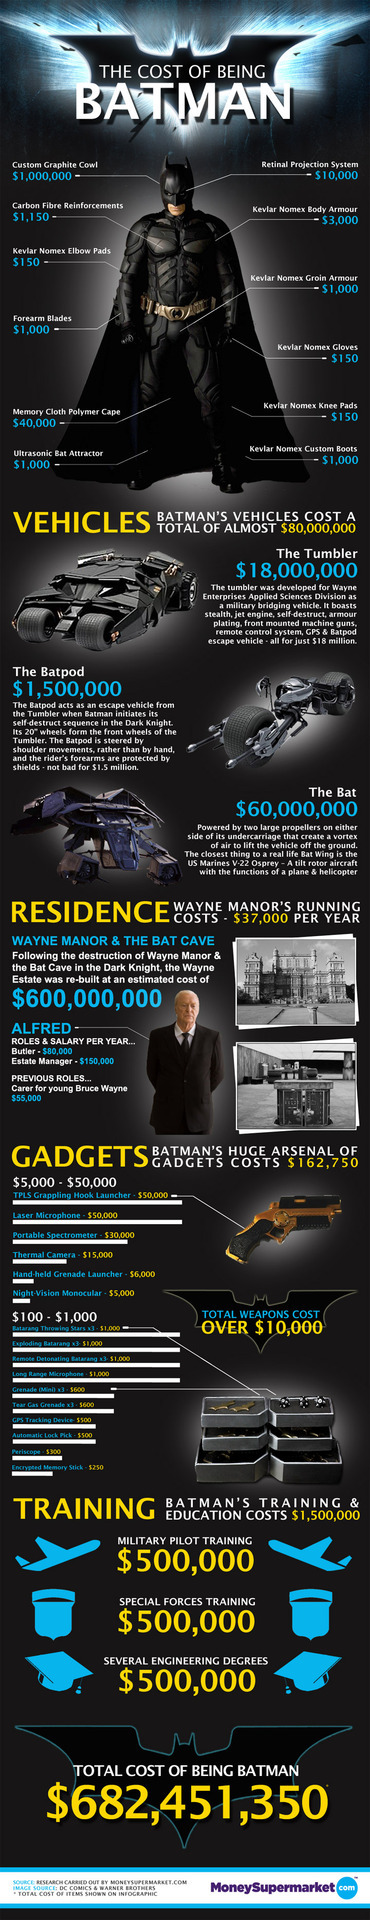 The cost of being Batman - so cool! Also, yay Alfred making bank that you probably don't ever use.